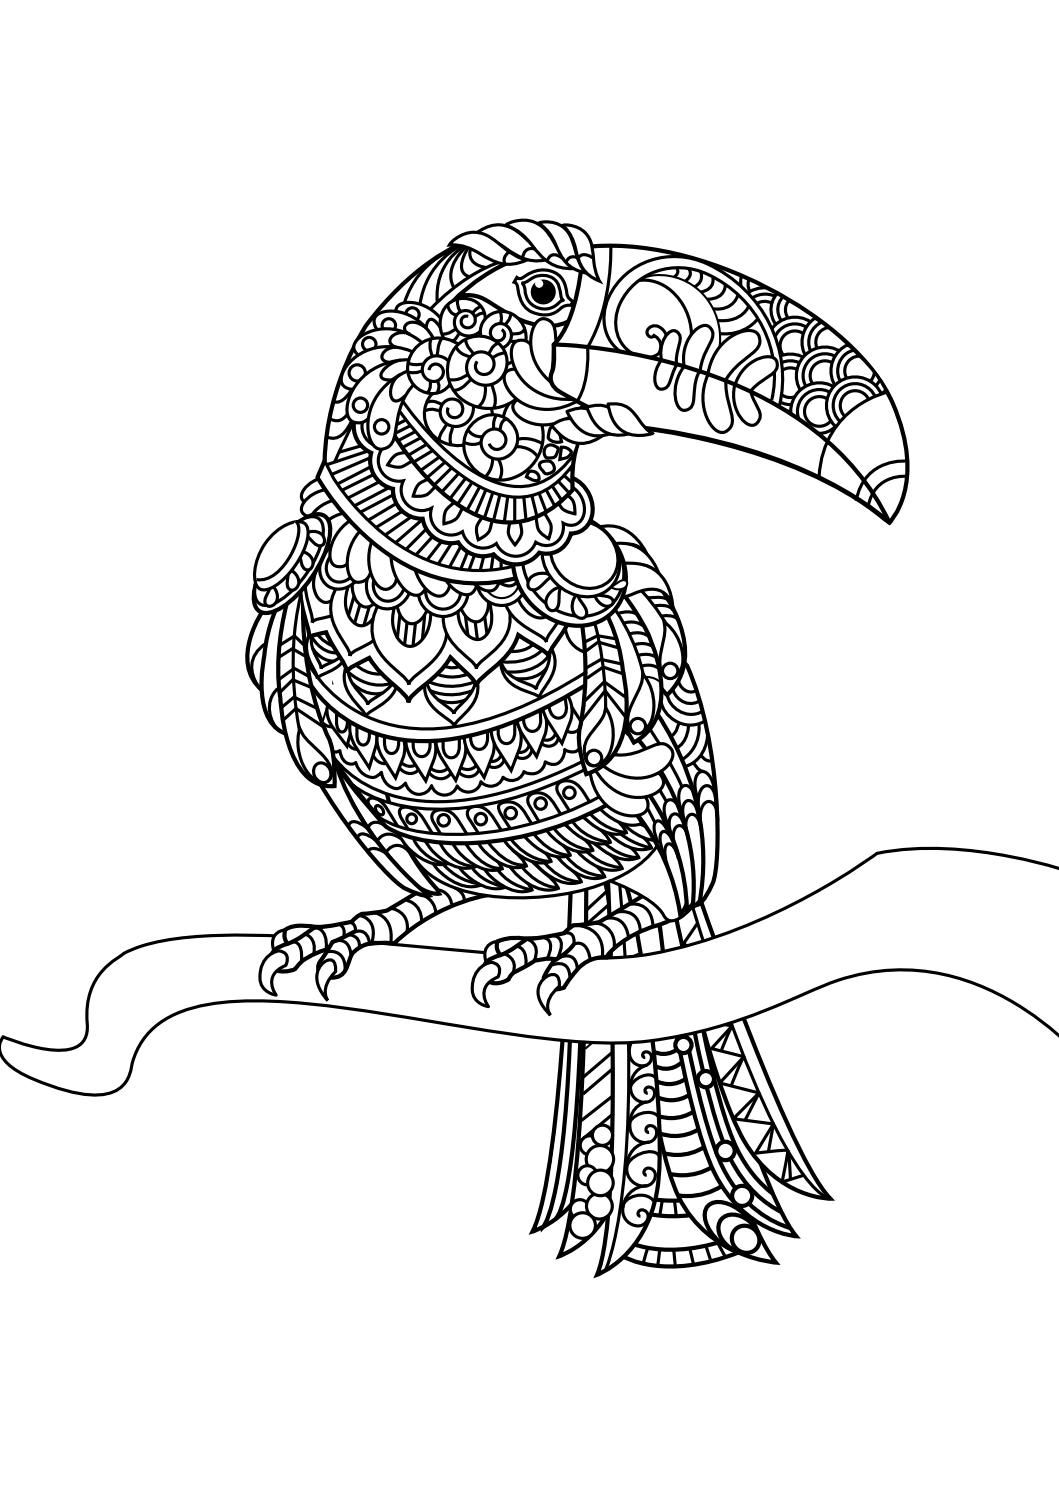 Animal Coloring Pages Pdf Bird Coloring Pages Horse Coloring